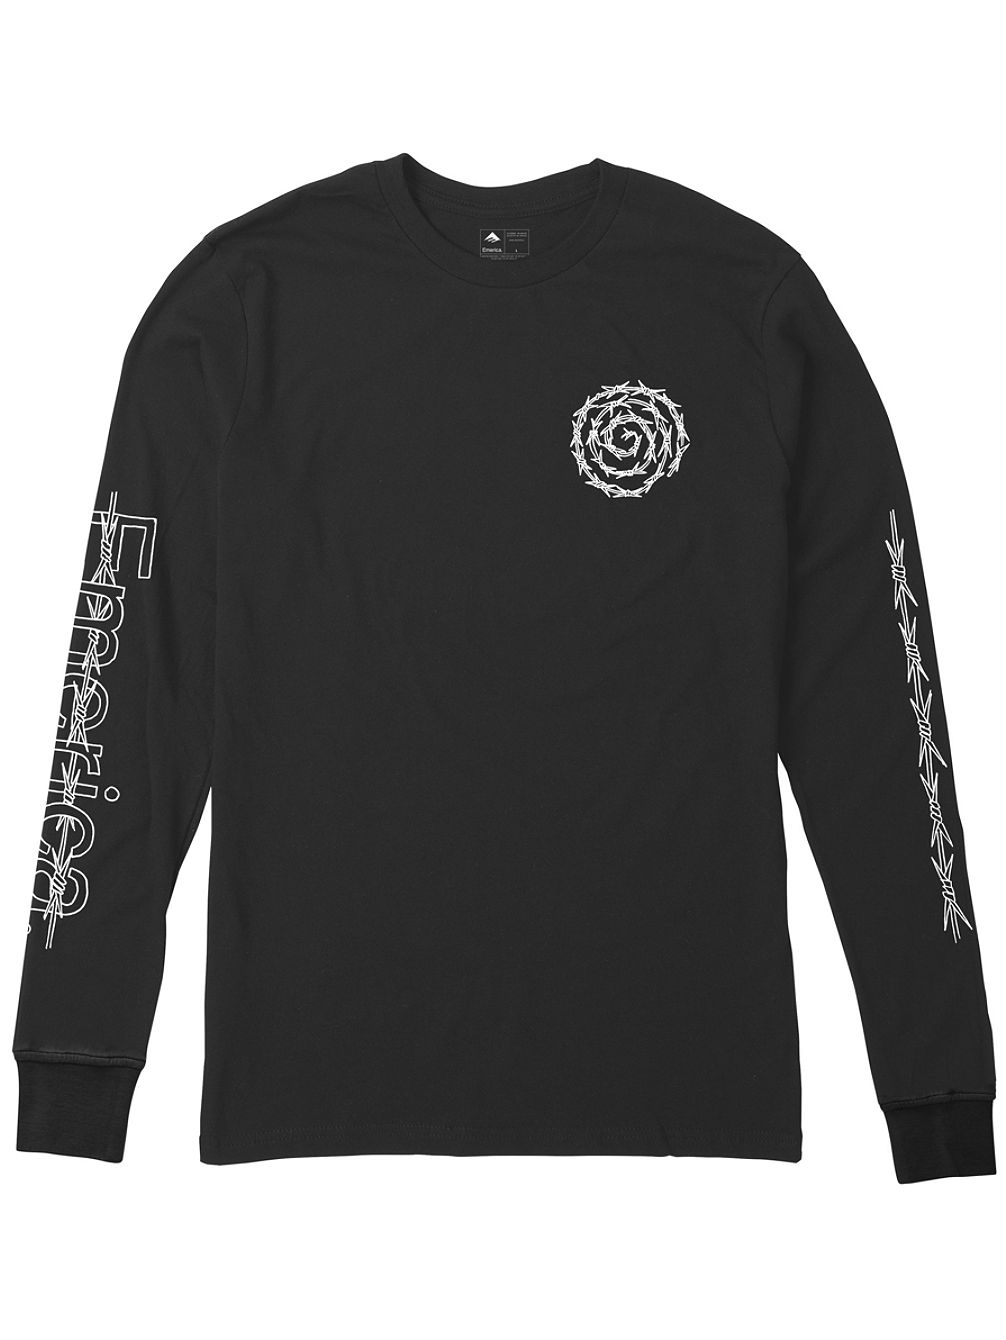 adfce8be Buy Emerica Barbed Long Sleeve T-Shirt online at Blue Tomato